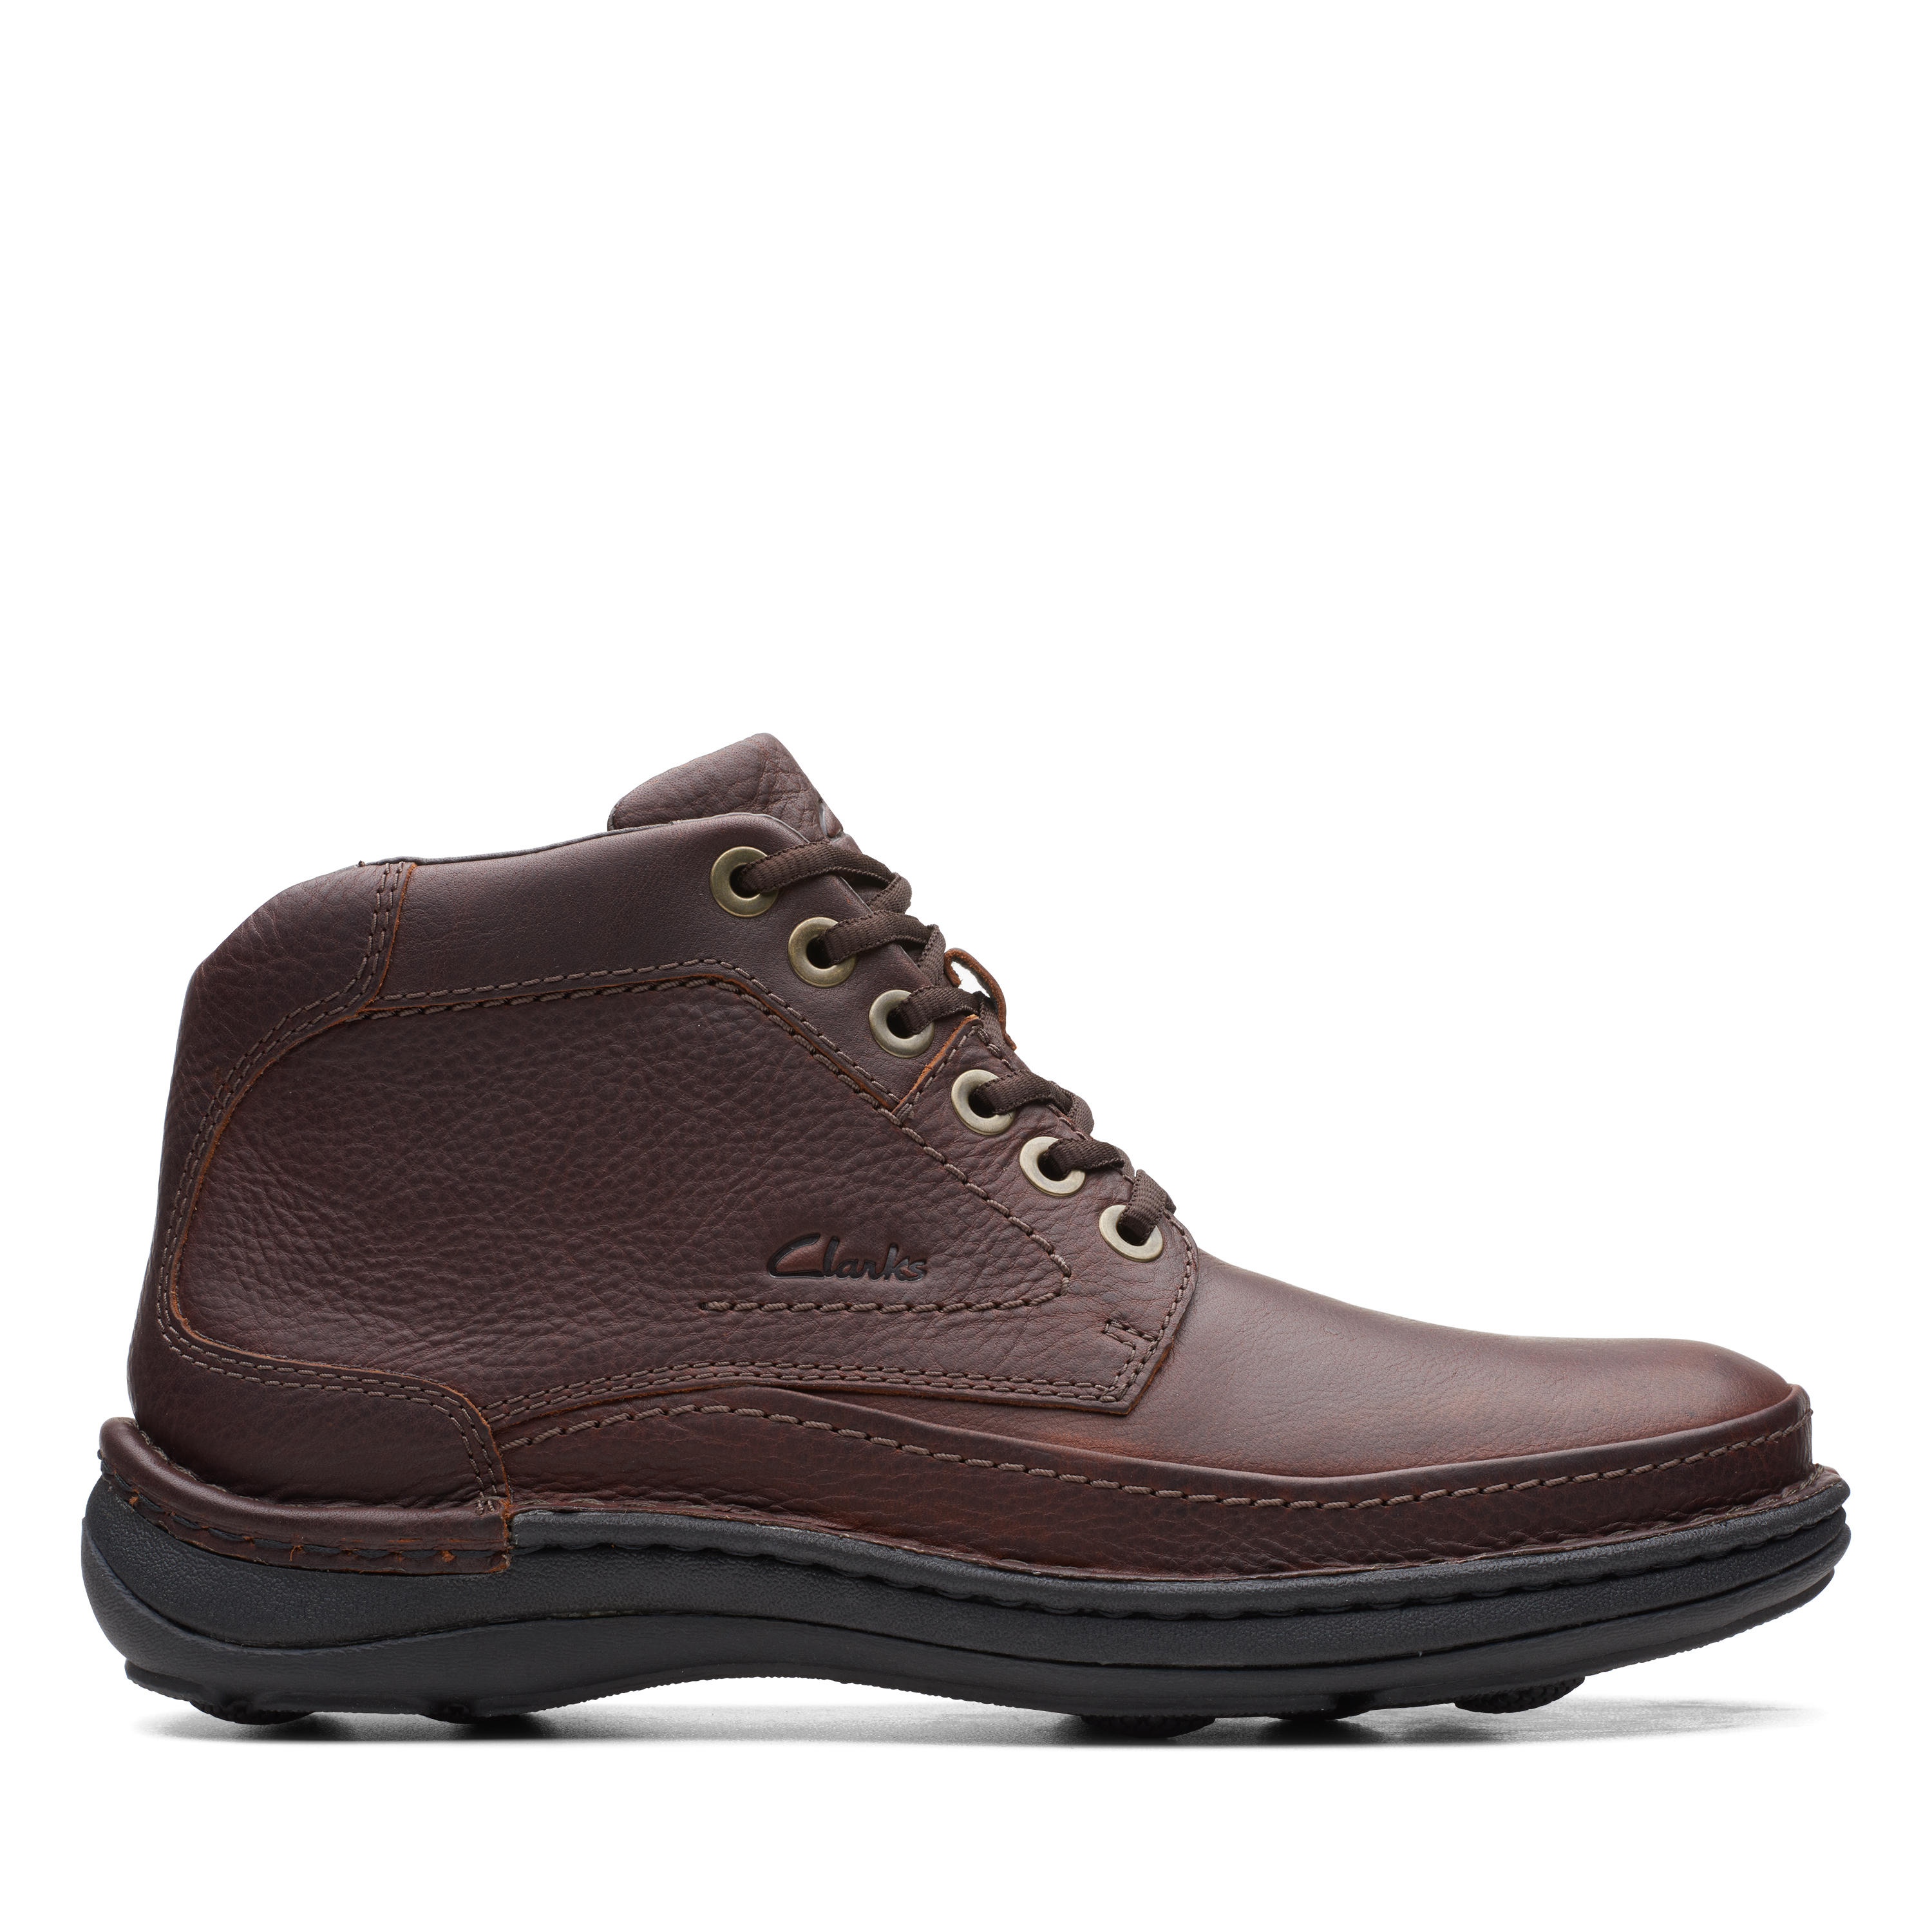 Clarks – Casual Nature Lite ΑΝΔΡ.ΥΠΟΔΗΜΑ